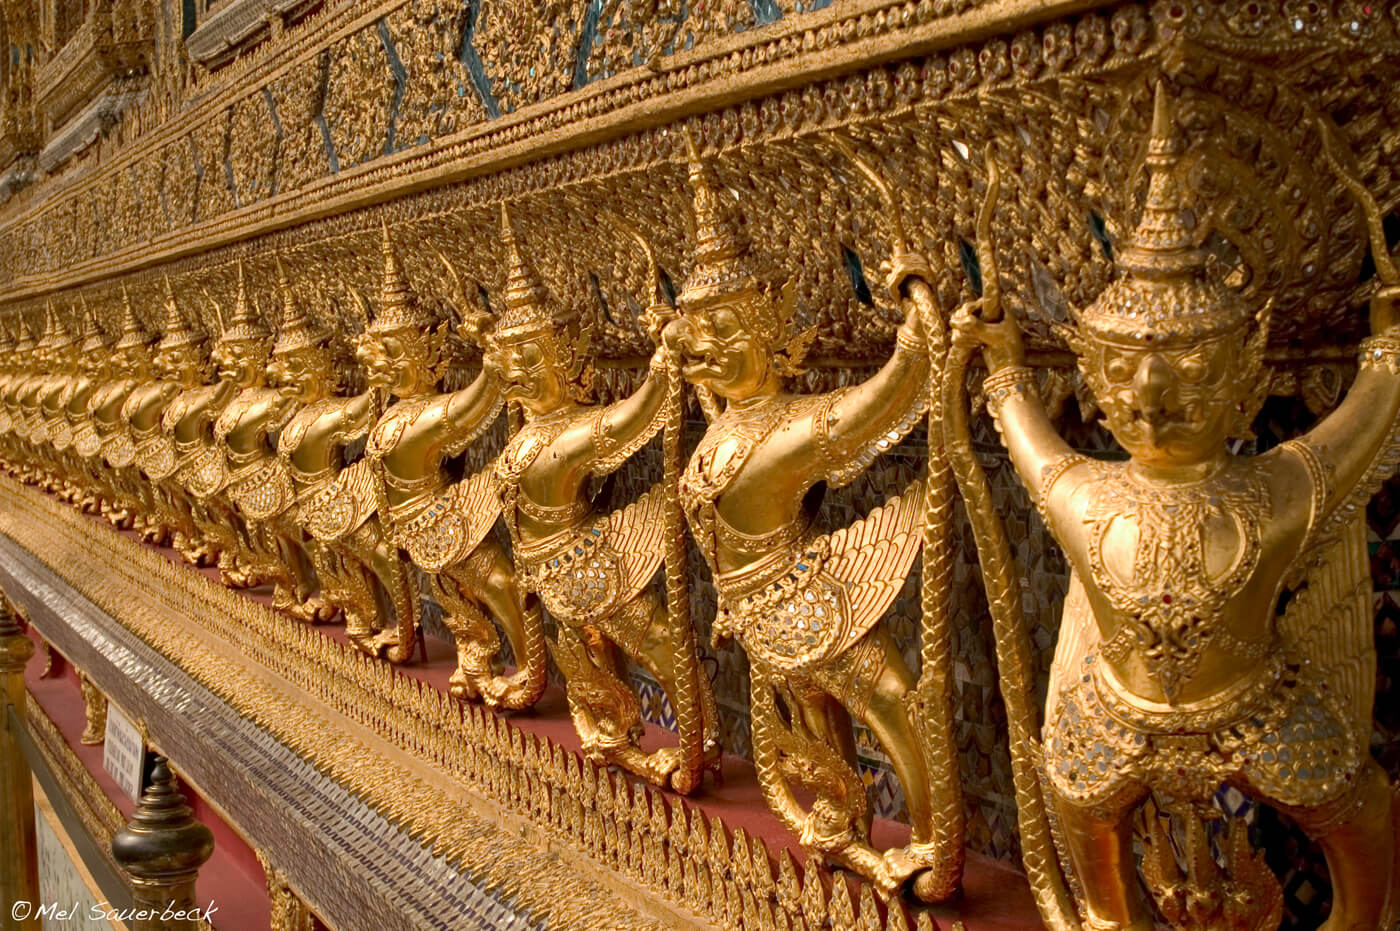 Golden Thai temple statues